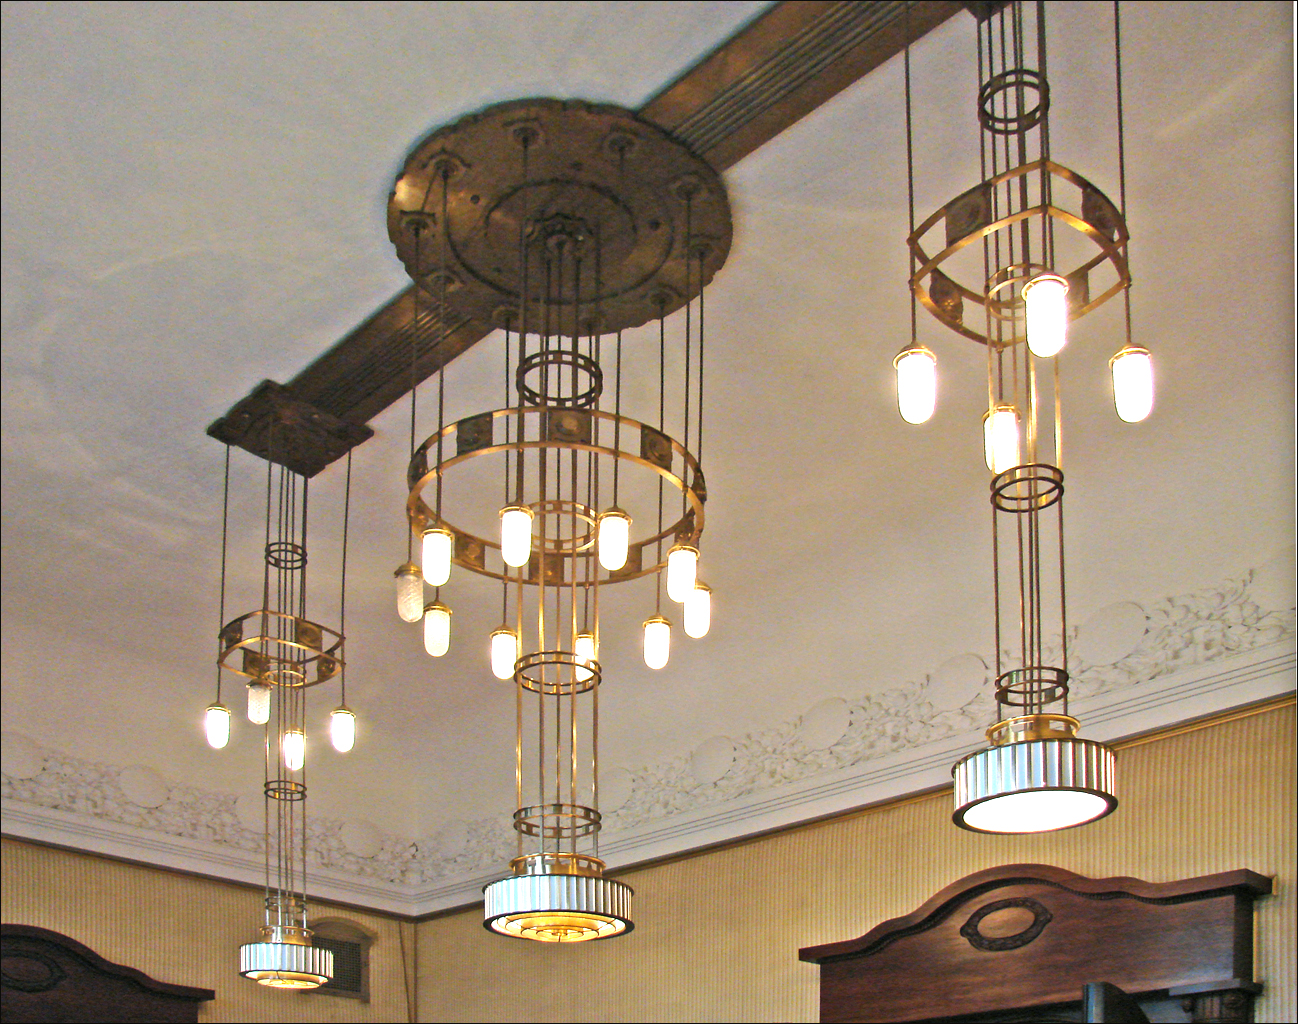 File luminaire jugendstil oslo 4849344013 jpg wikimedia commons - Grosse suspension luminaire ...